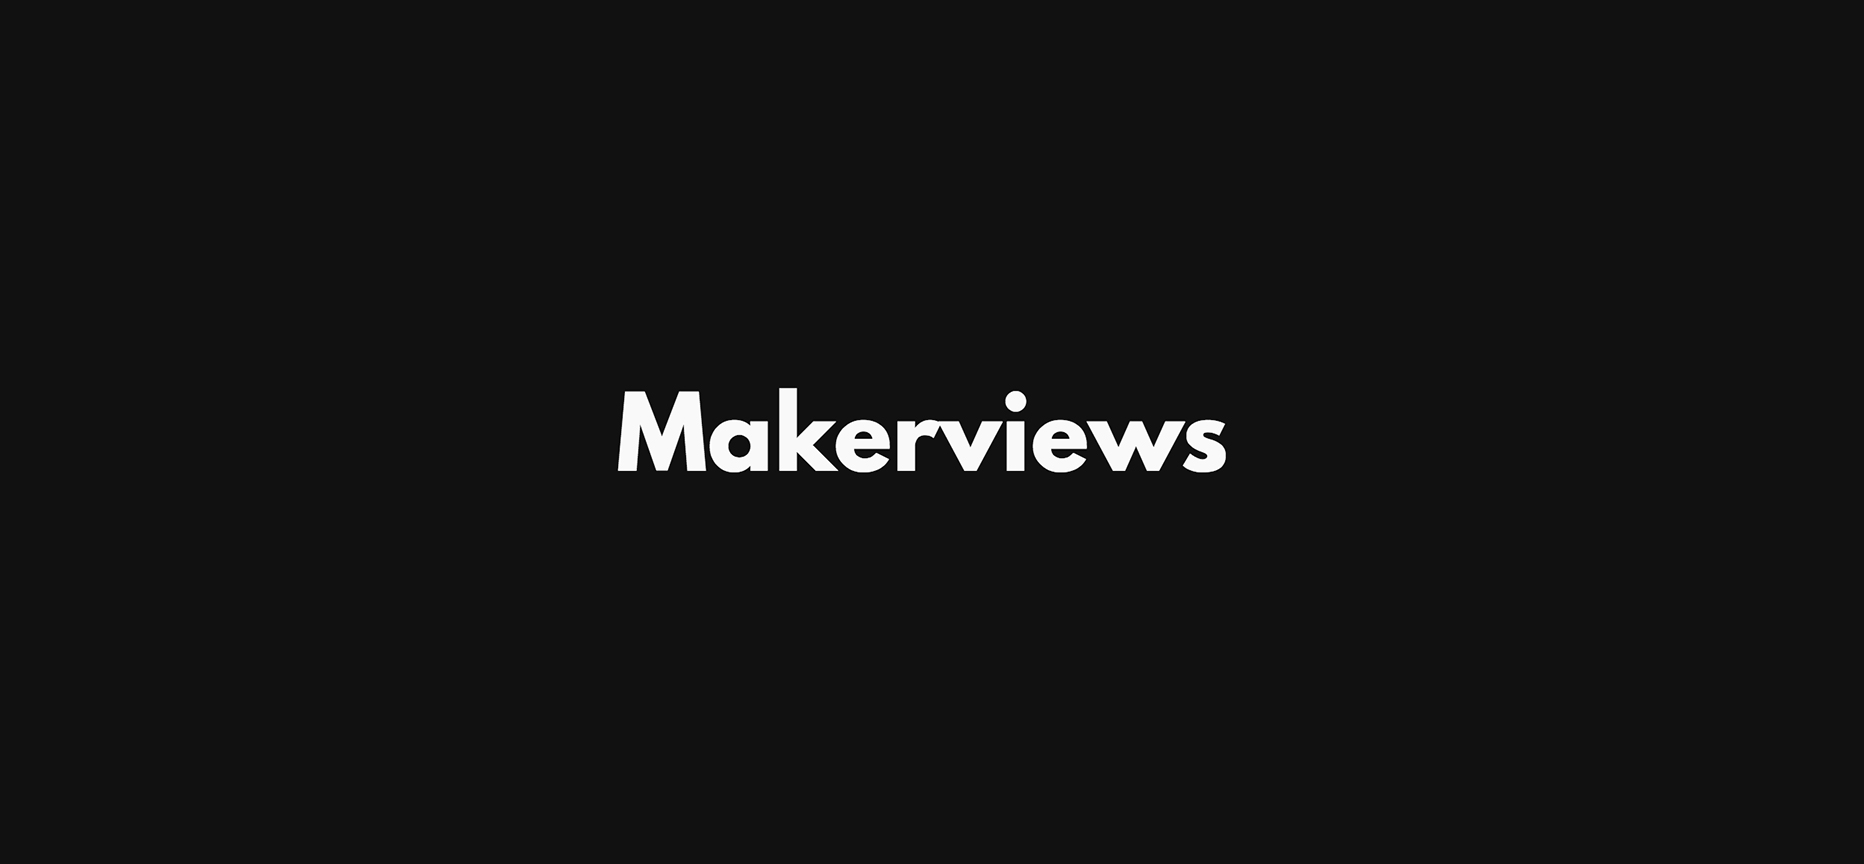 Makerviews News